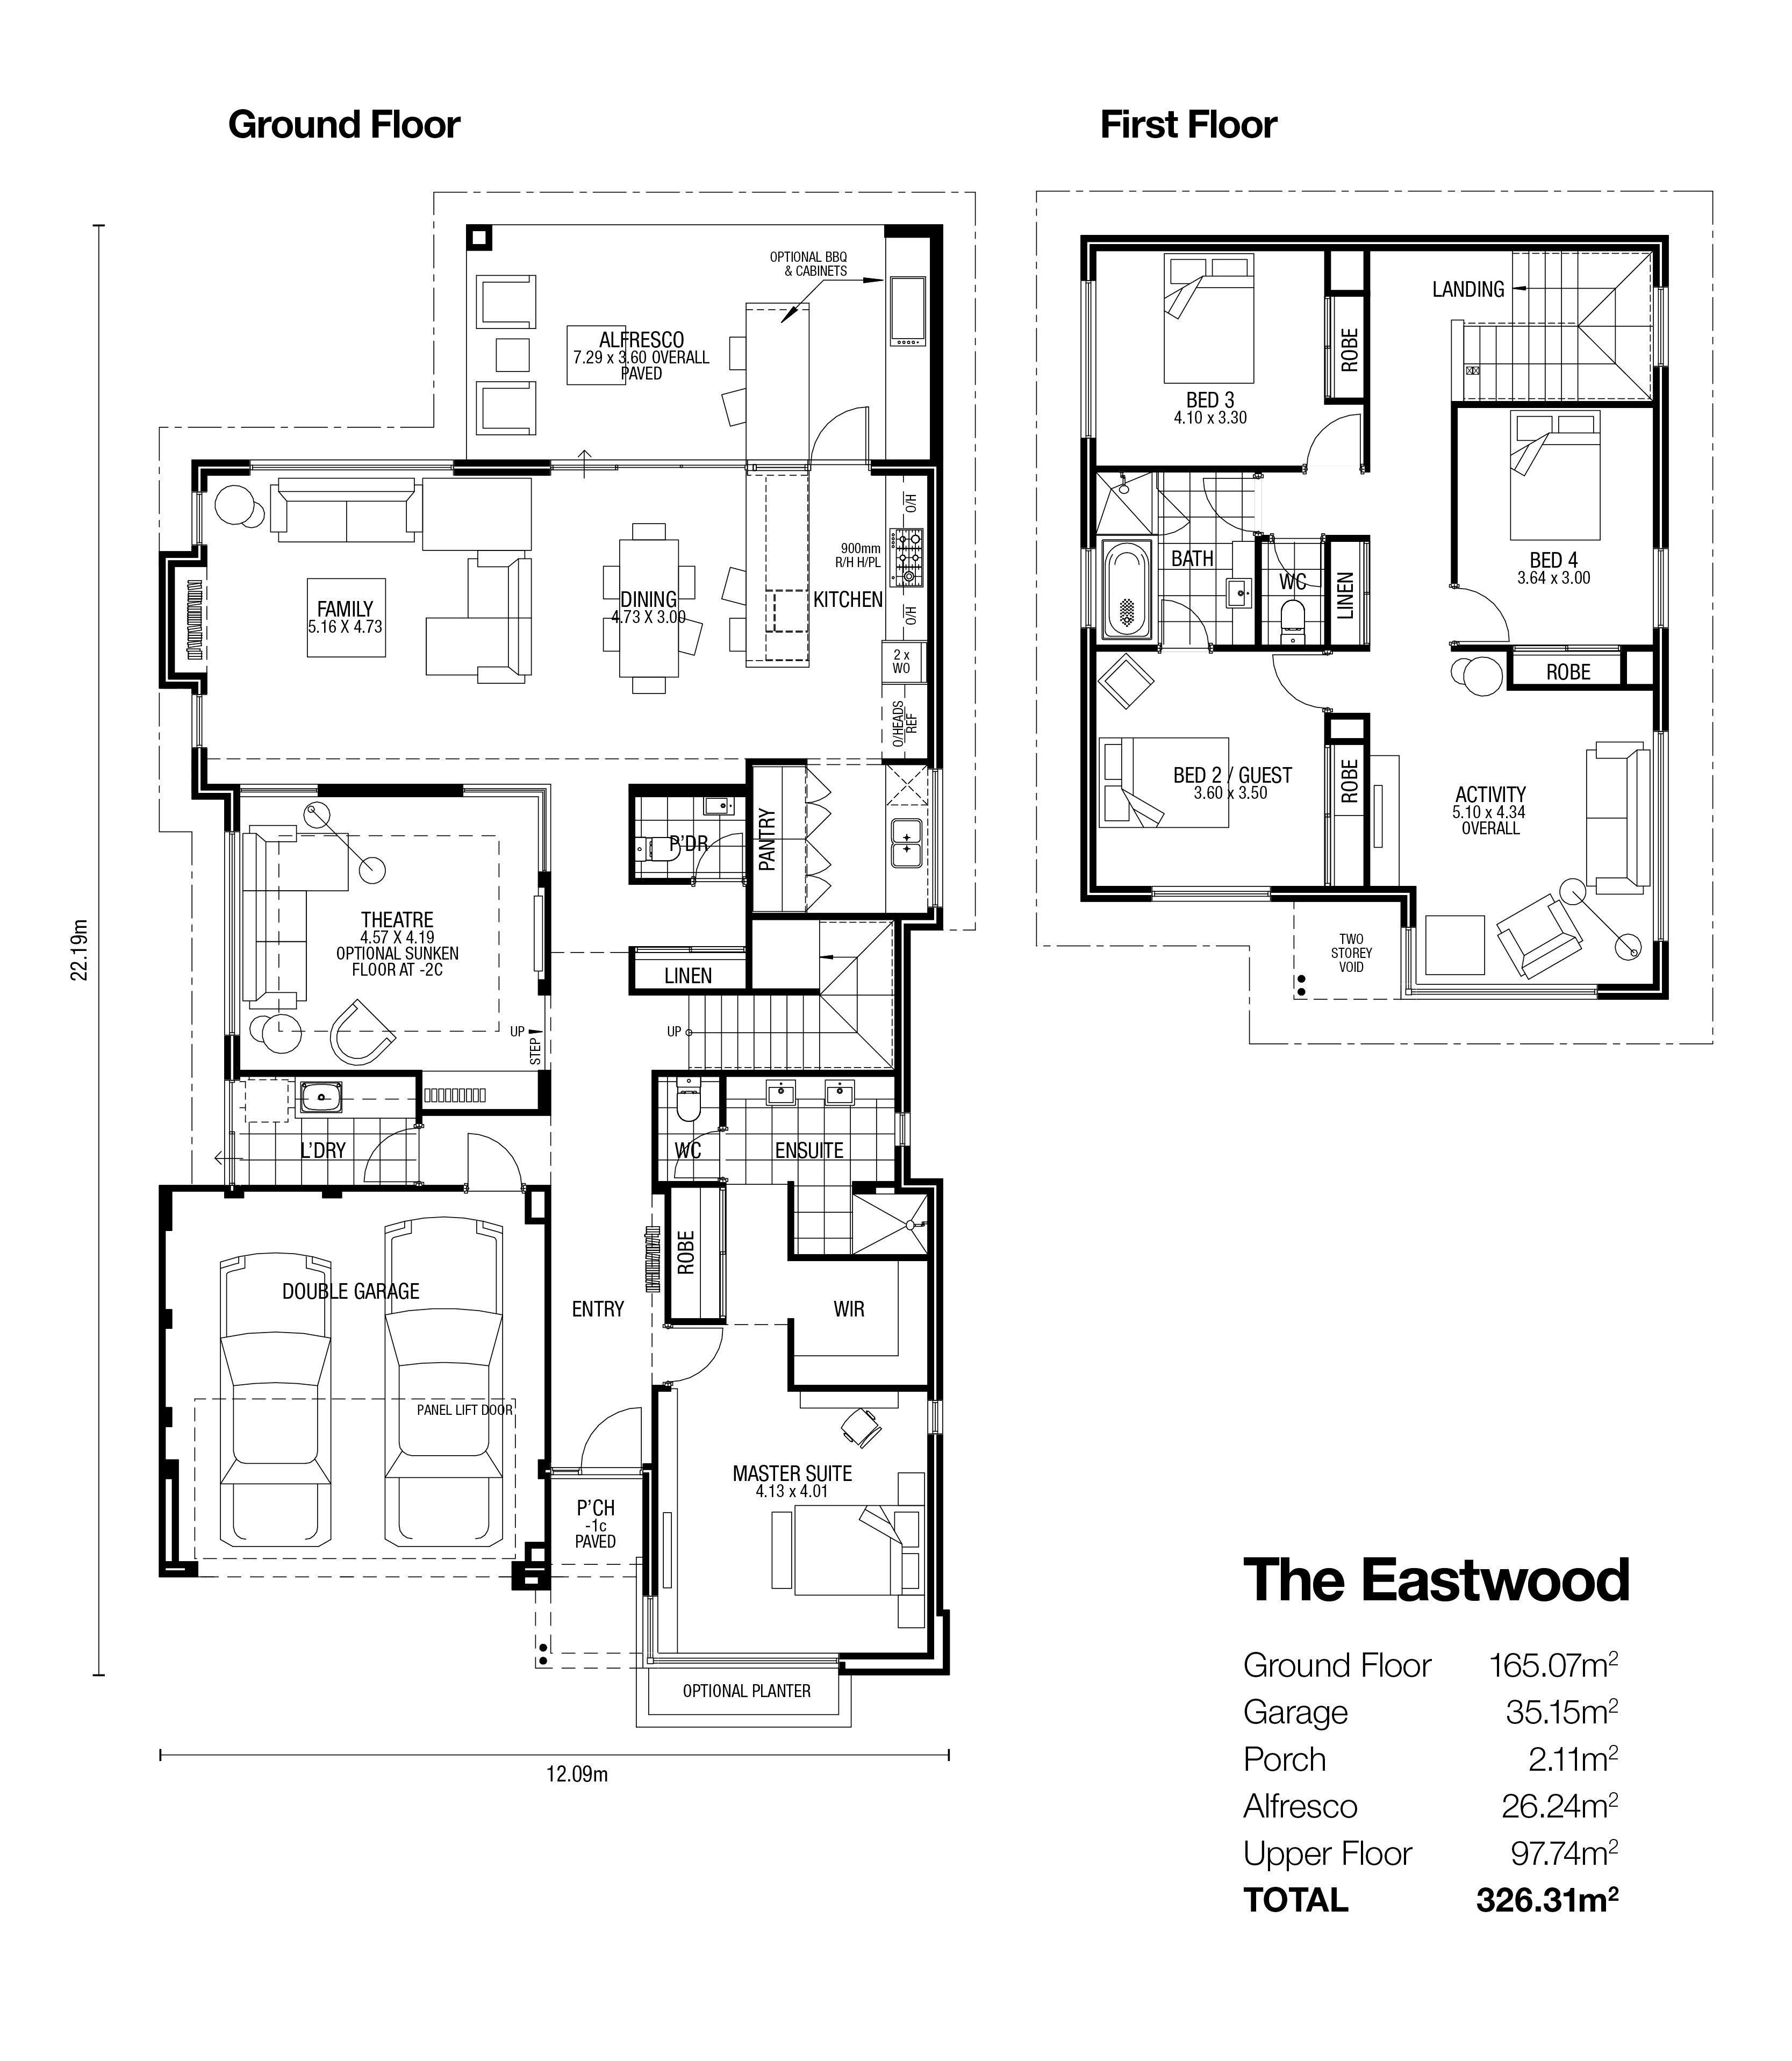 The Eastwood Display Homes Broadway Homes House Plans Australia Two Storey House Plans Double Storey House Plans